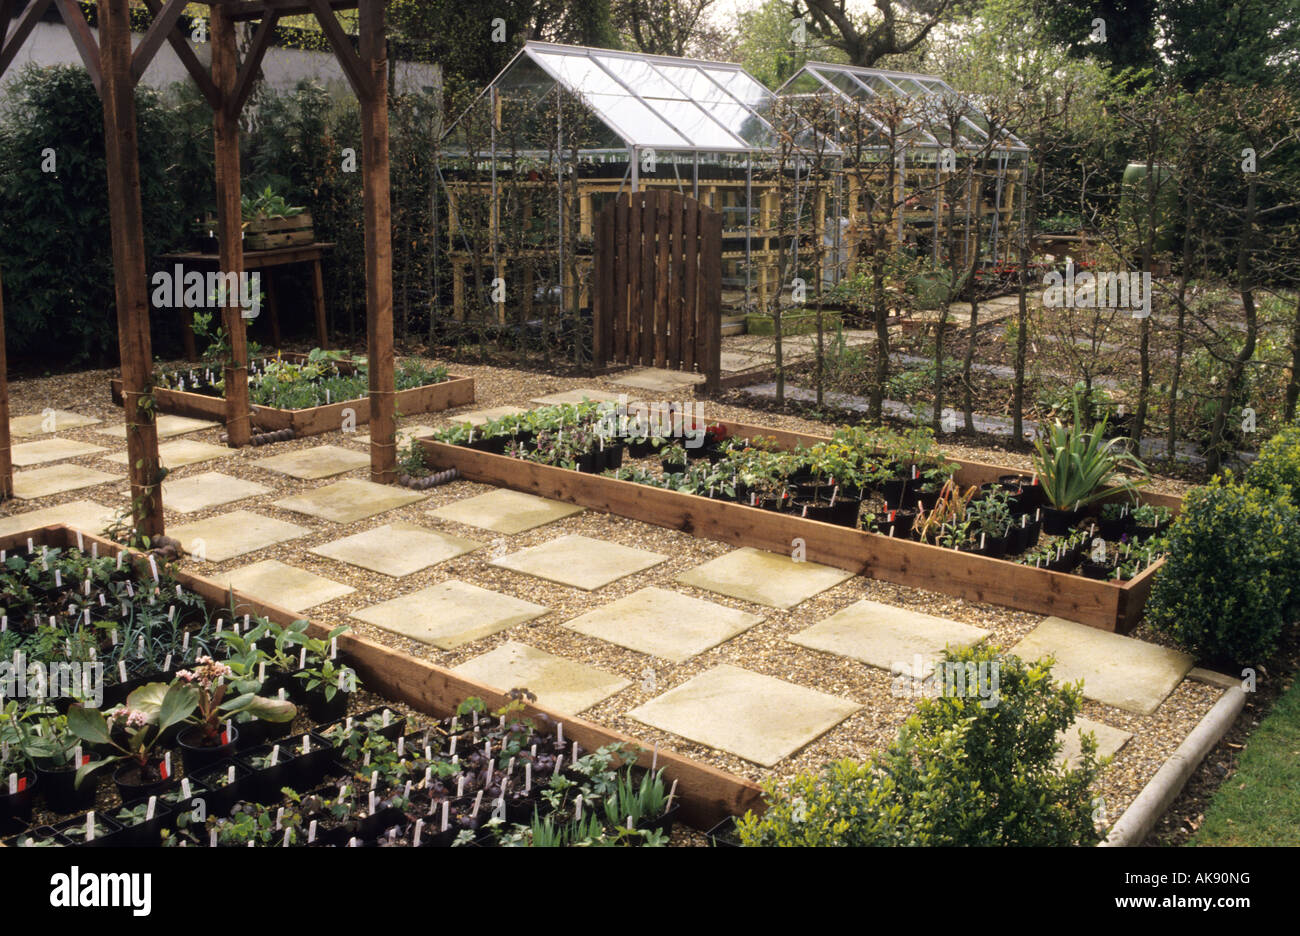 Stock photo the anchorage kent tidy organized garden work area including small glasshouse